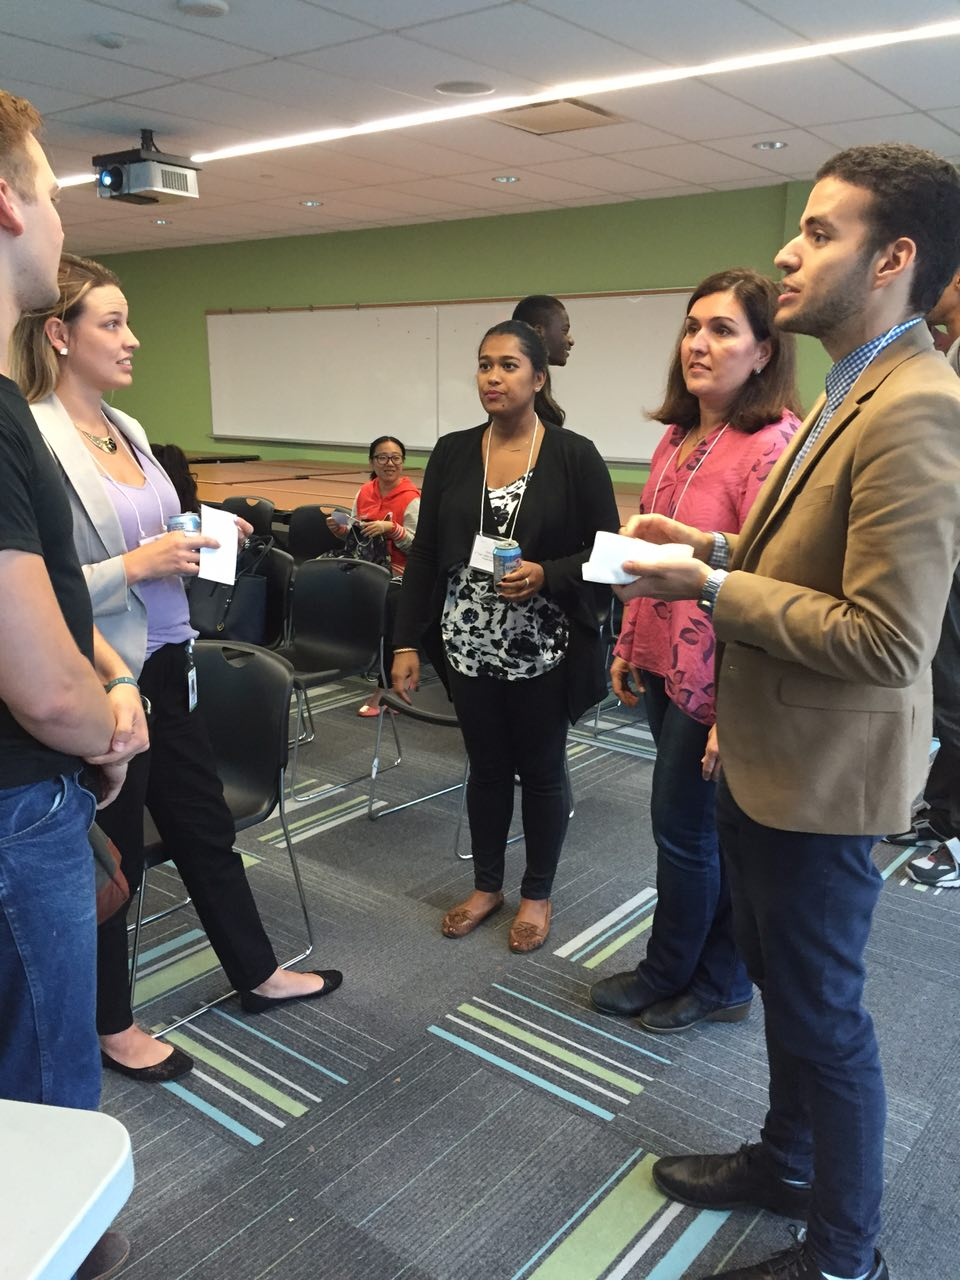 Digital Business Management: Networking and Placement ExperienceEvent